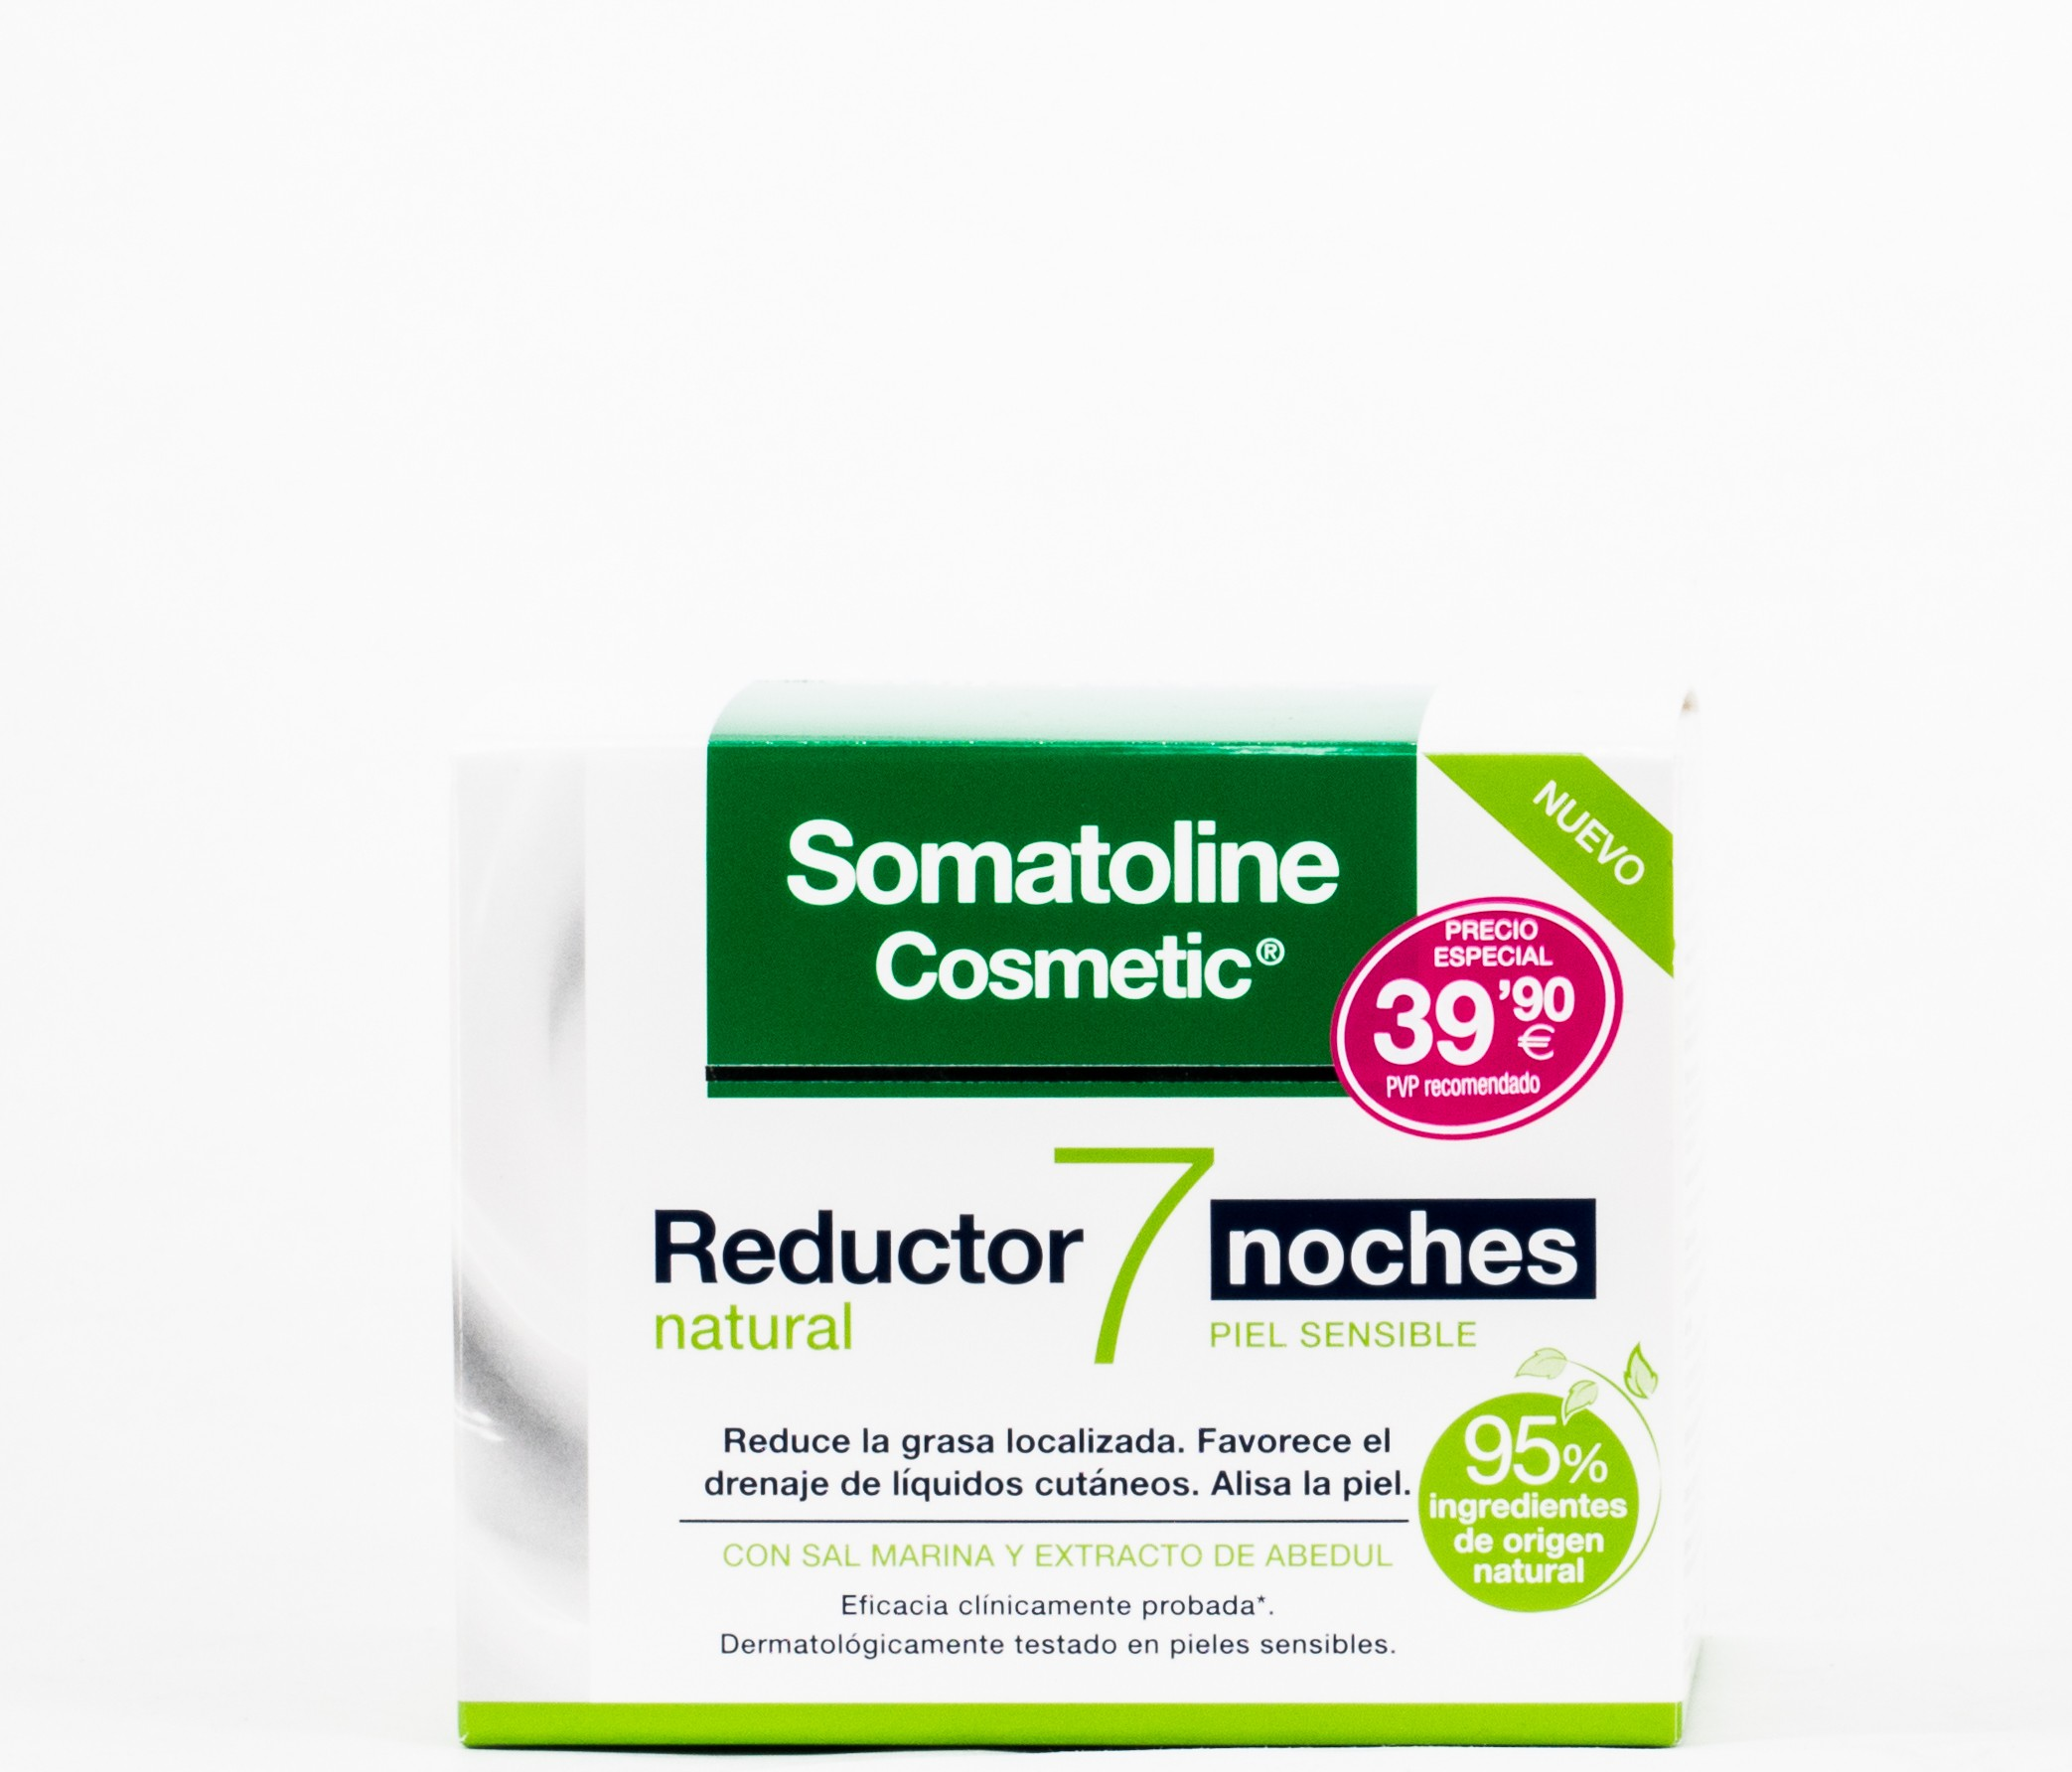 Somatoline Reductor Natural 7 noches, 400gr.